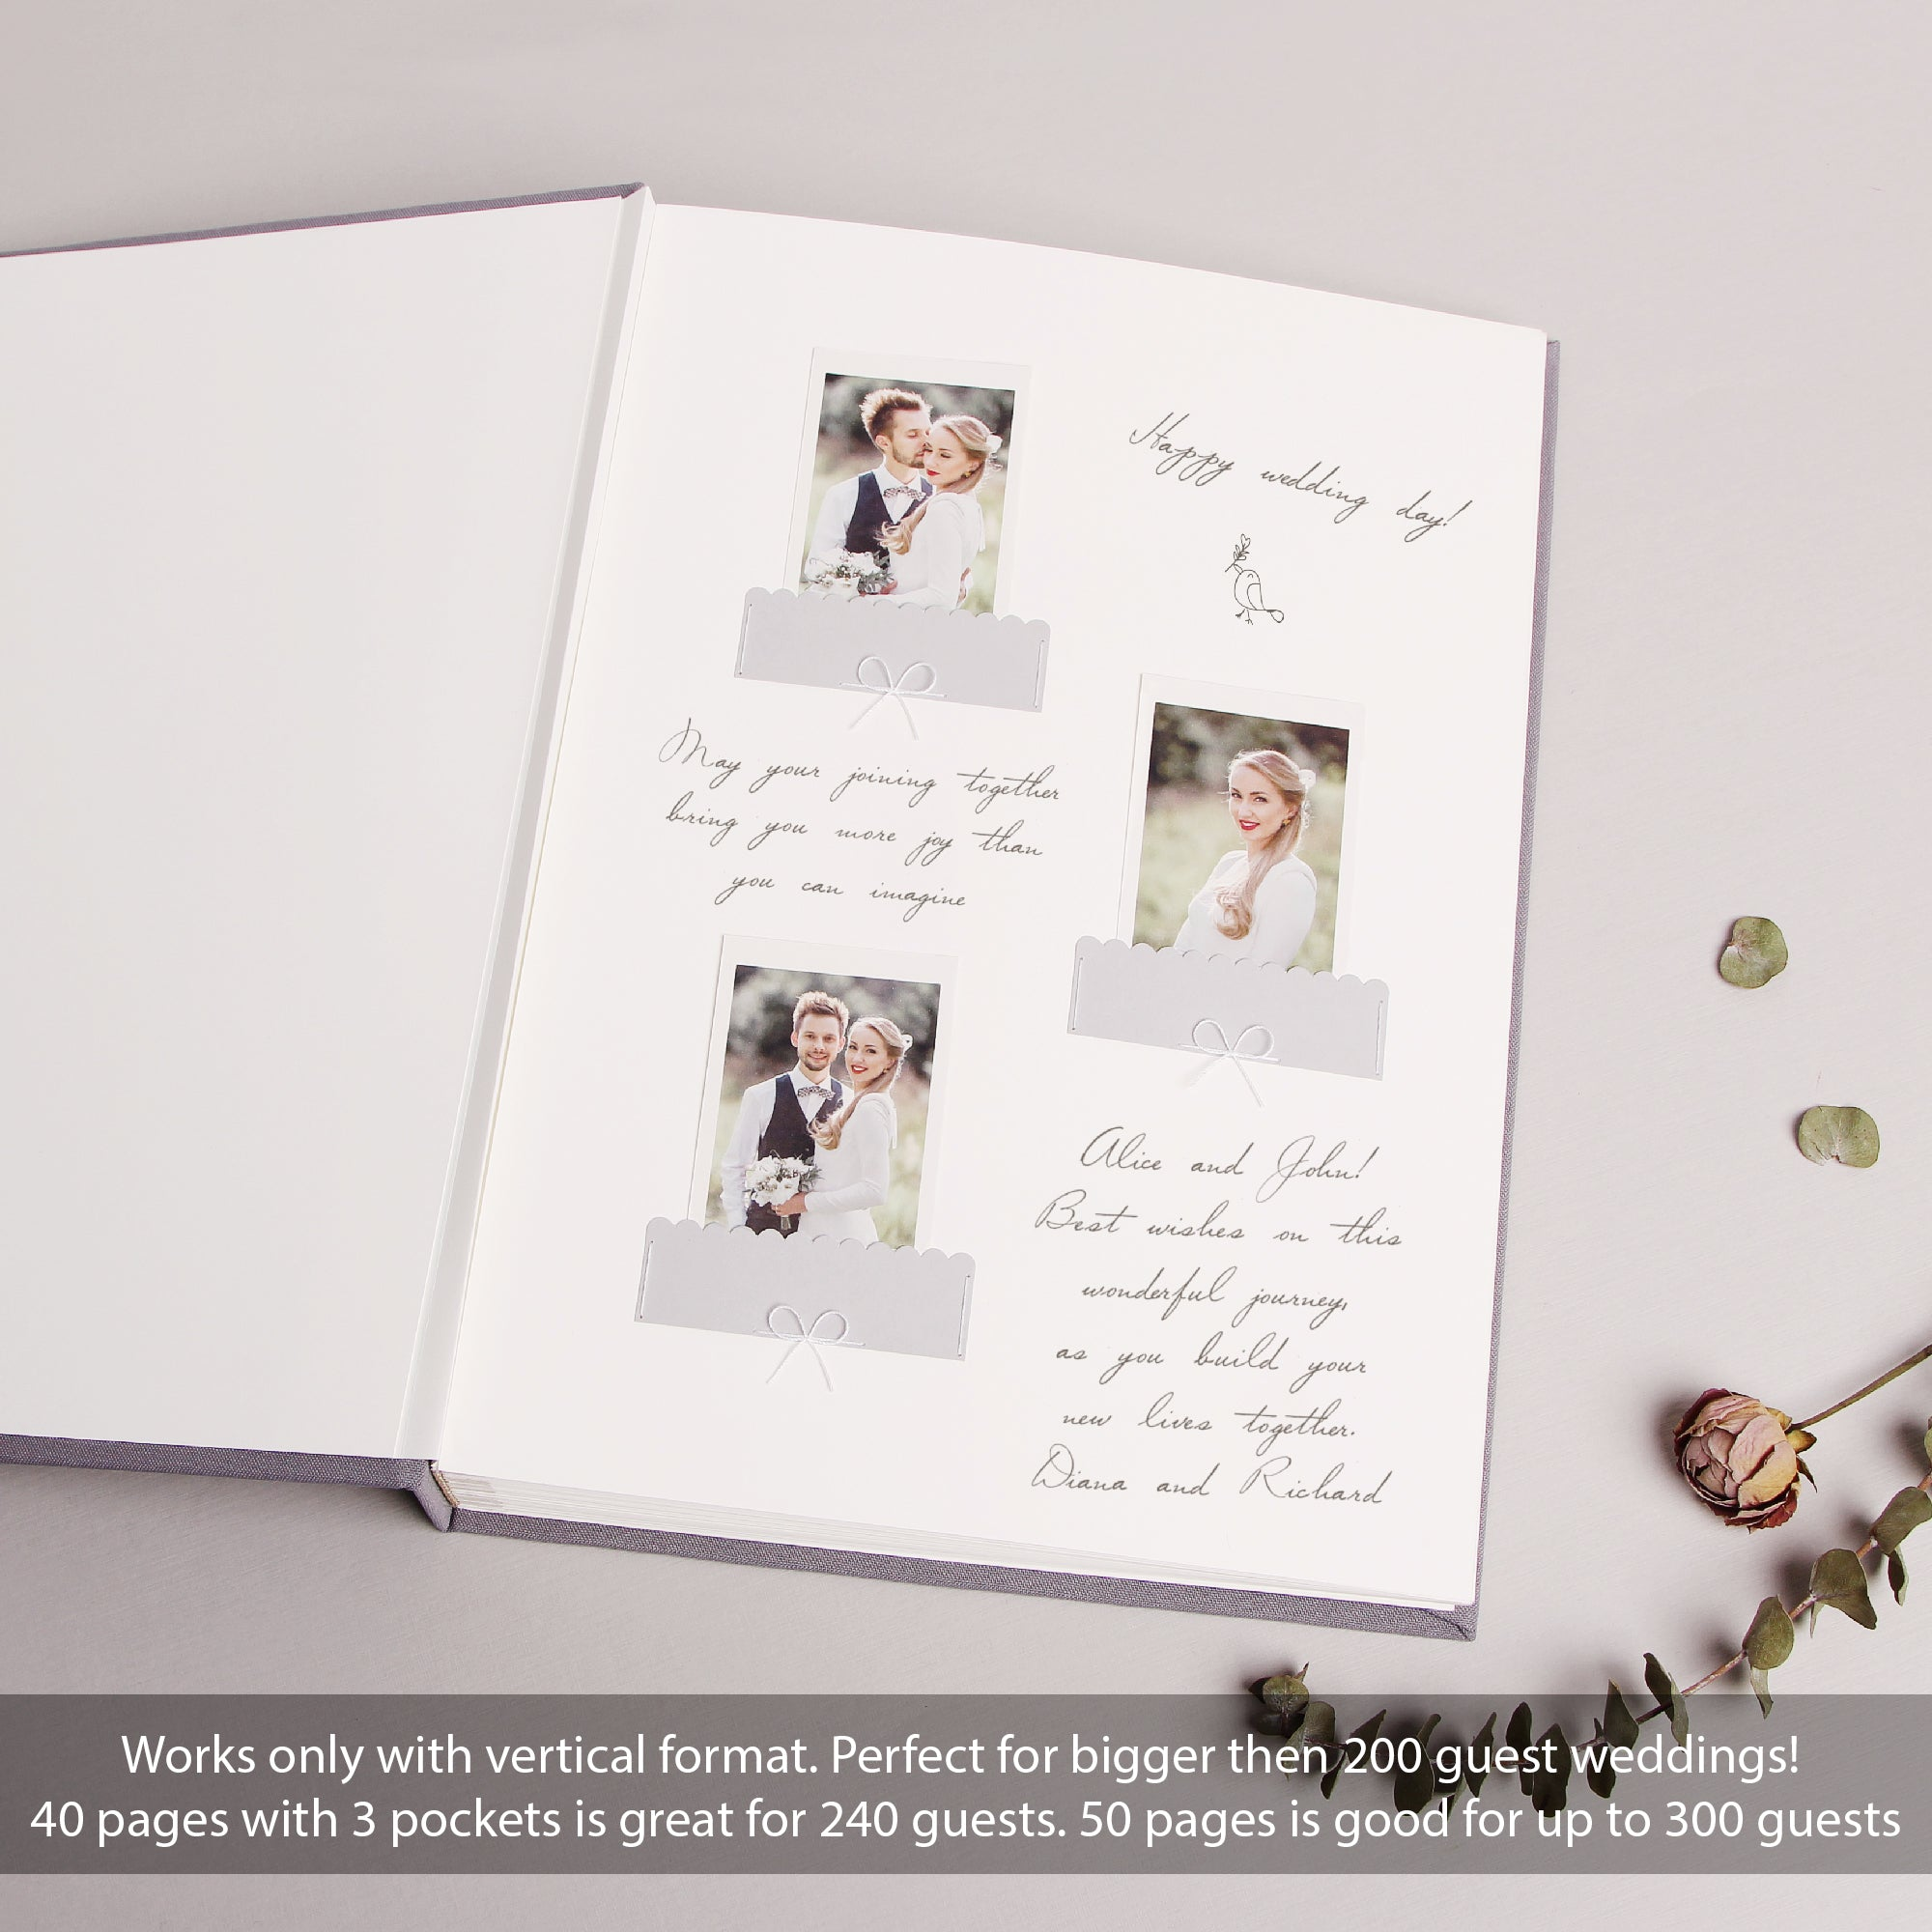 Wedding Instant Album Guest Book Sign in Book Coral with White Lettering by Liumy